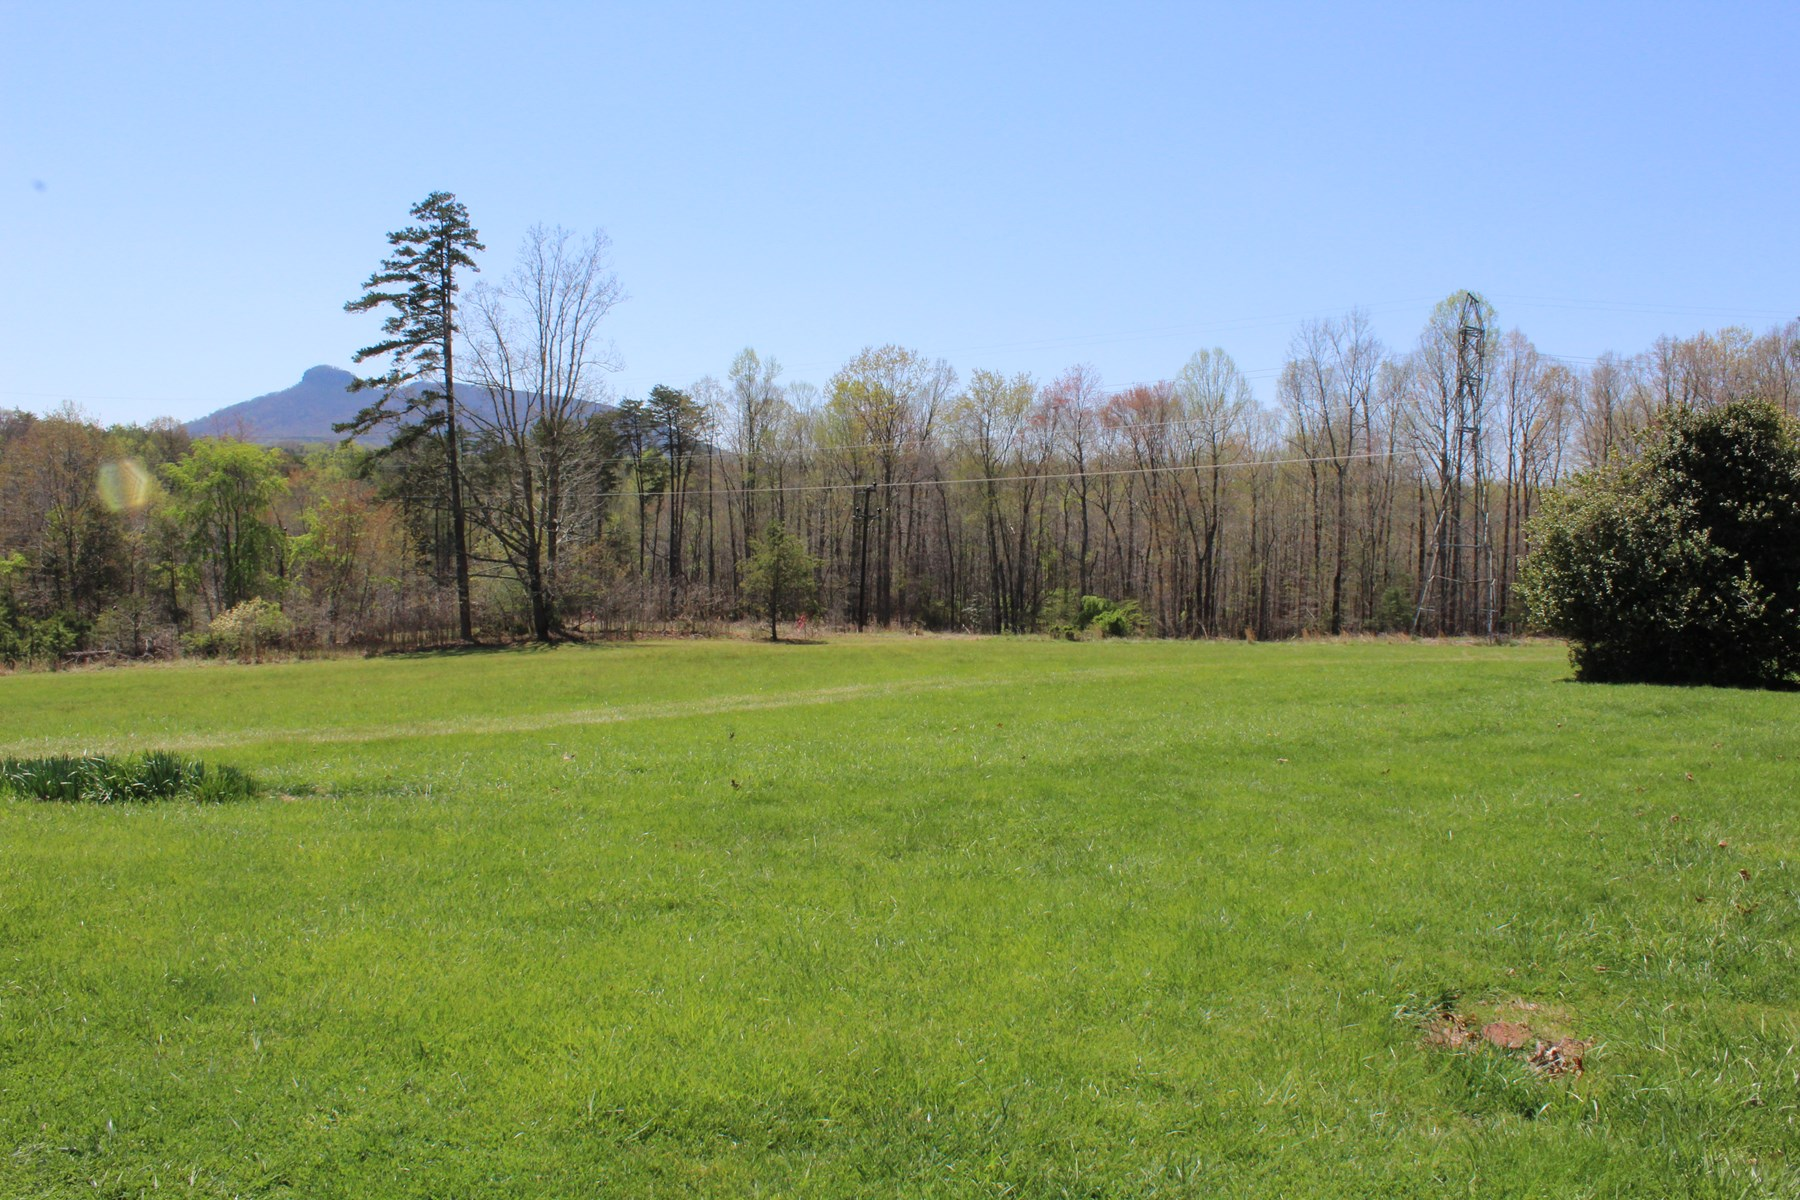 Land for sale in Pilot Mountain NC - Building Lot